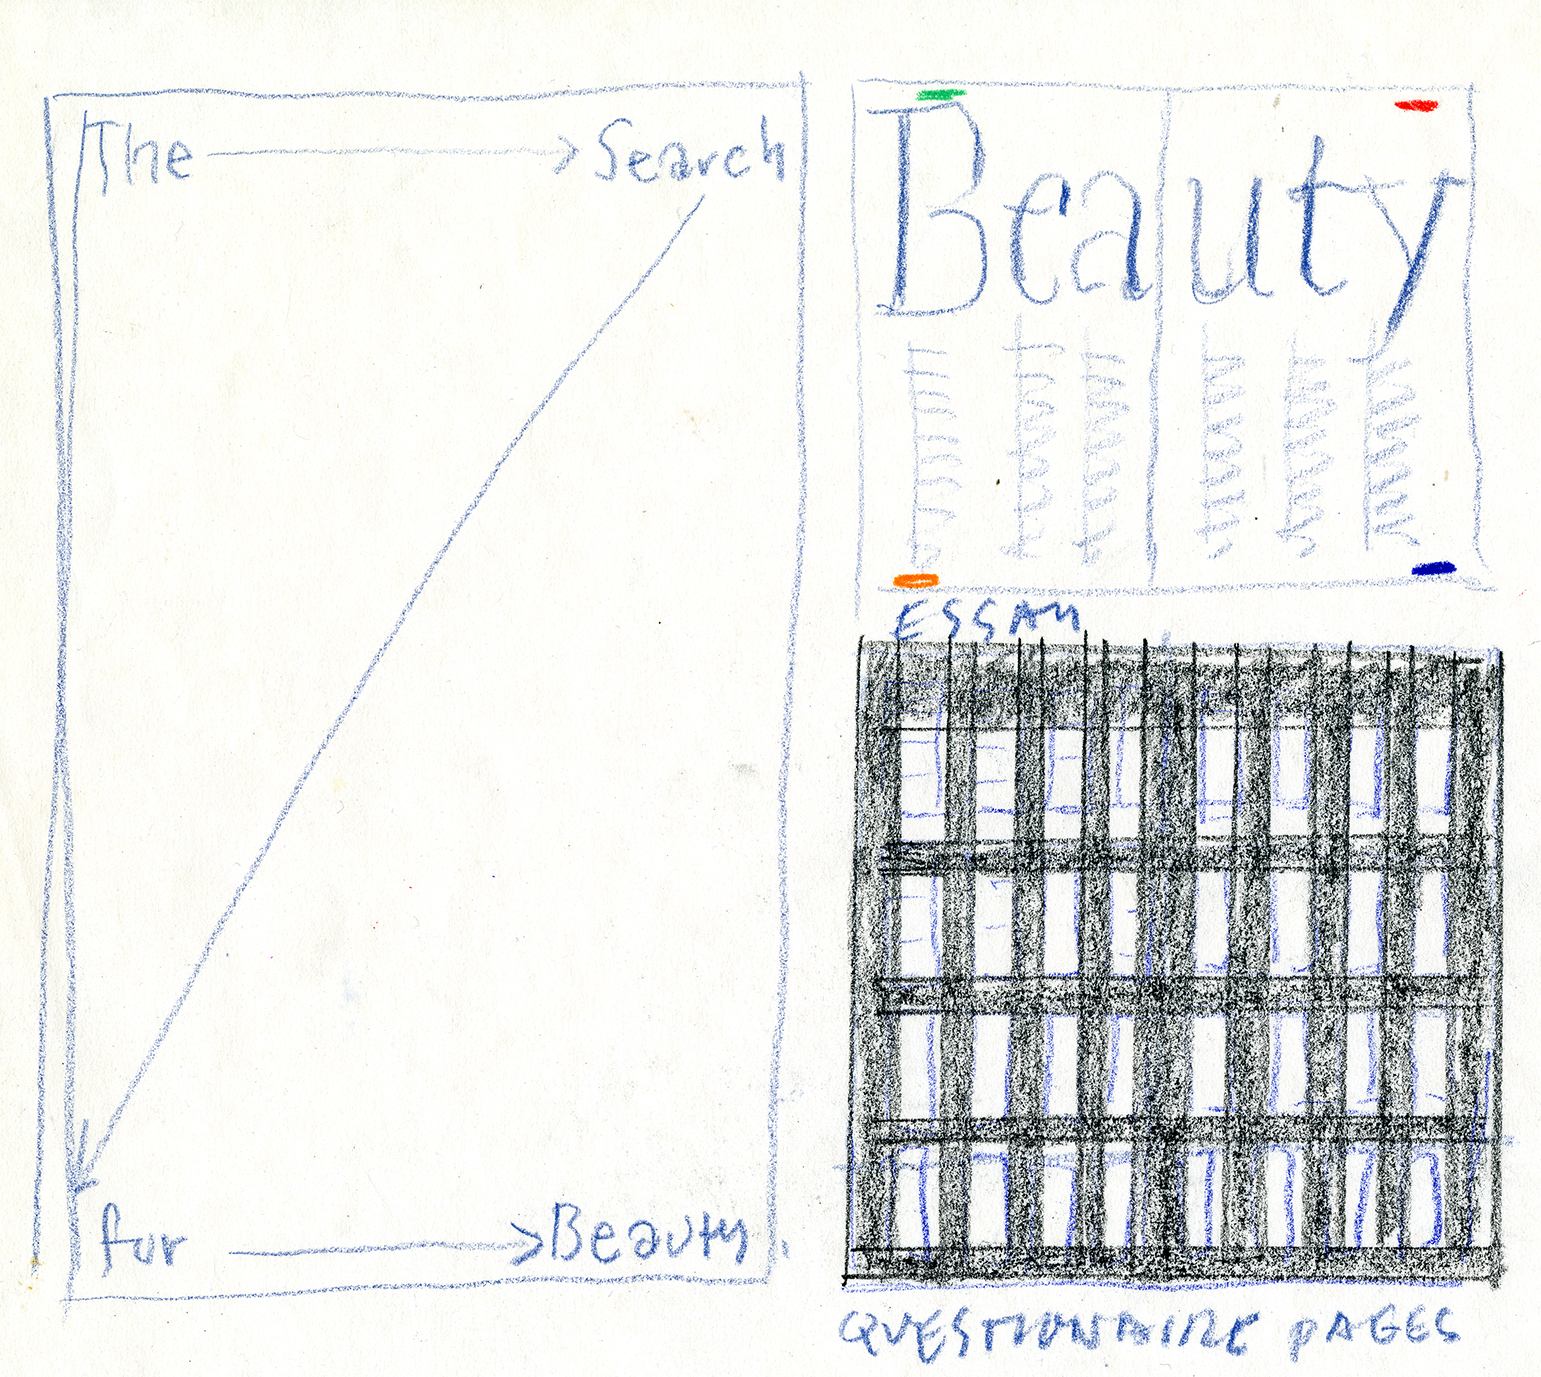 Thumbnail for The Glaser Nobody Knows: Milton Glaser and David Freedman on the 'Search for Beauty'